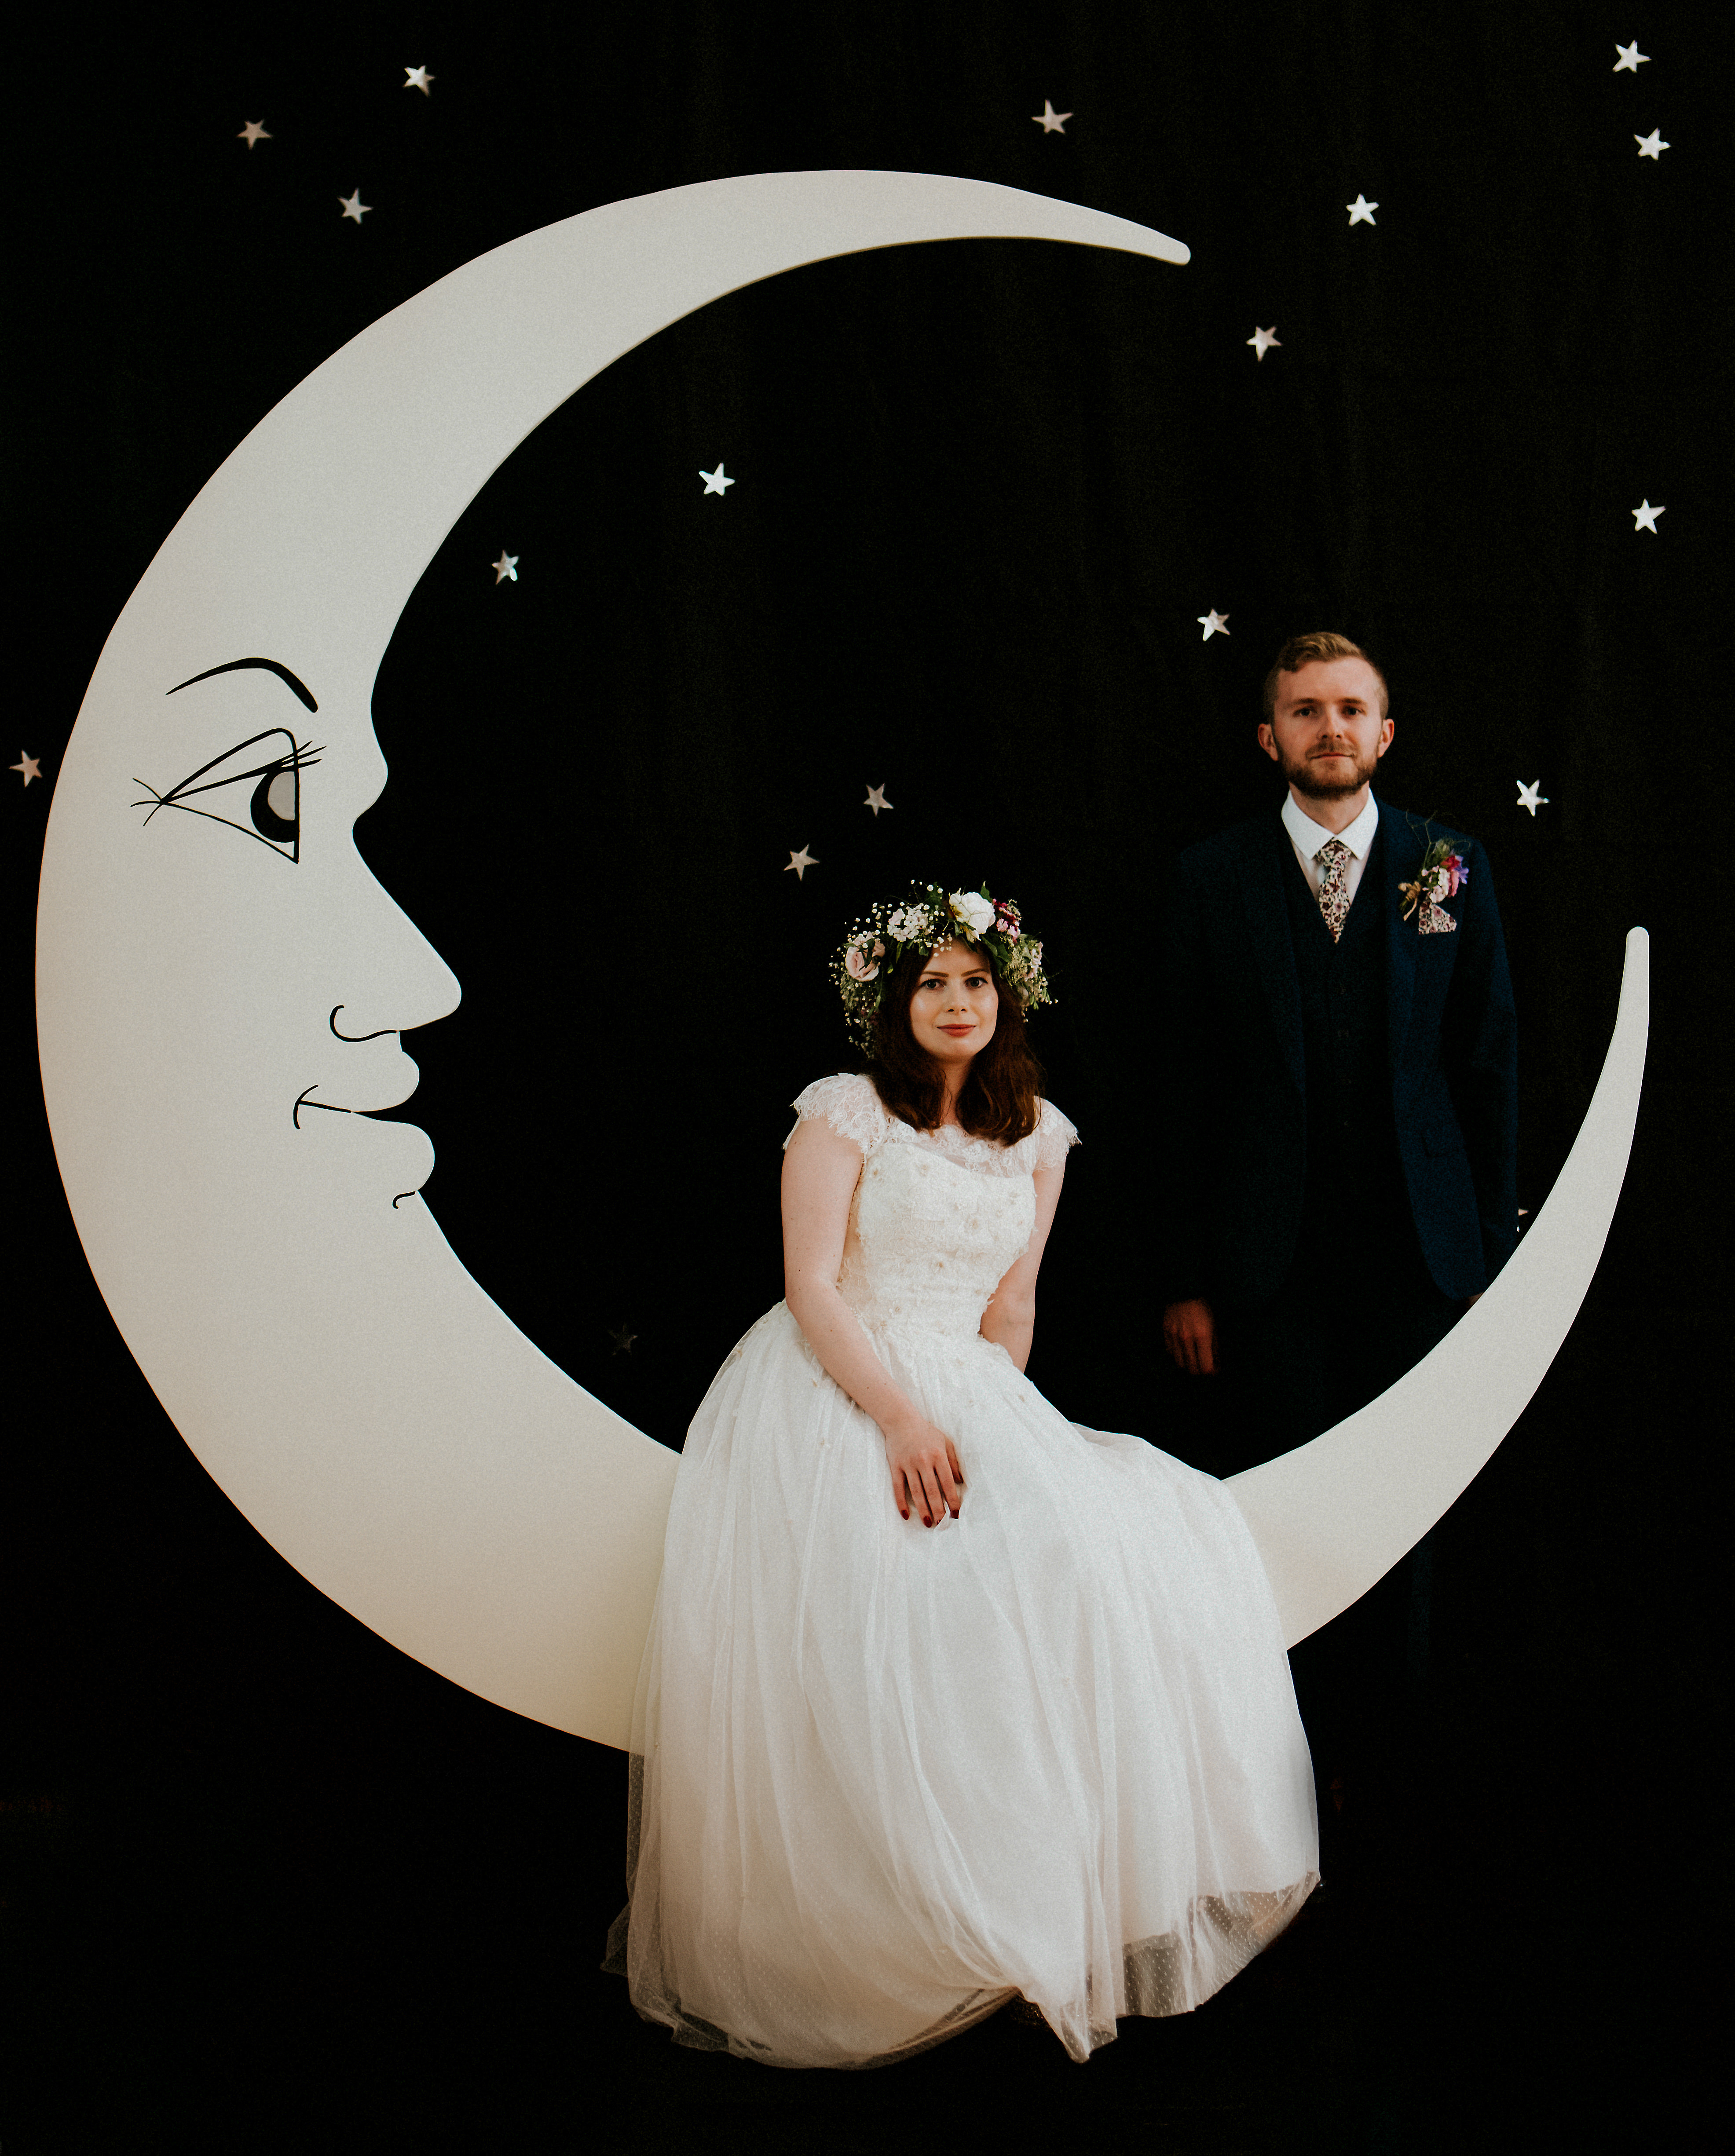 celestial photo booth